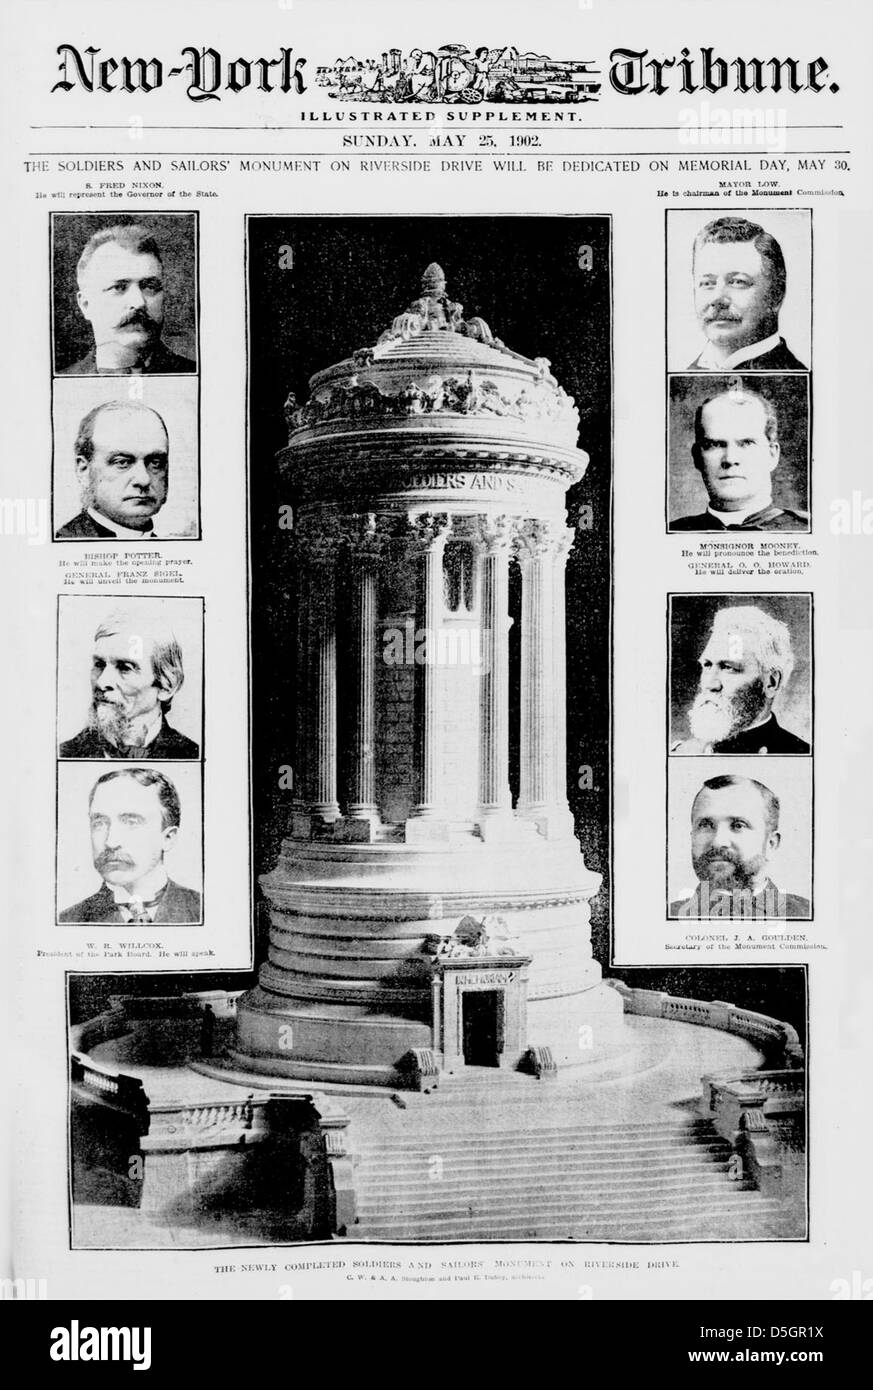 The Soldiers and Sailors' Monument on Riverside Drive will be dedicated on Memorial Day, May 30 (LOC) - Stock Image